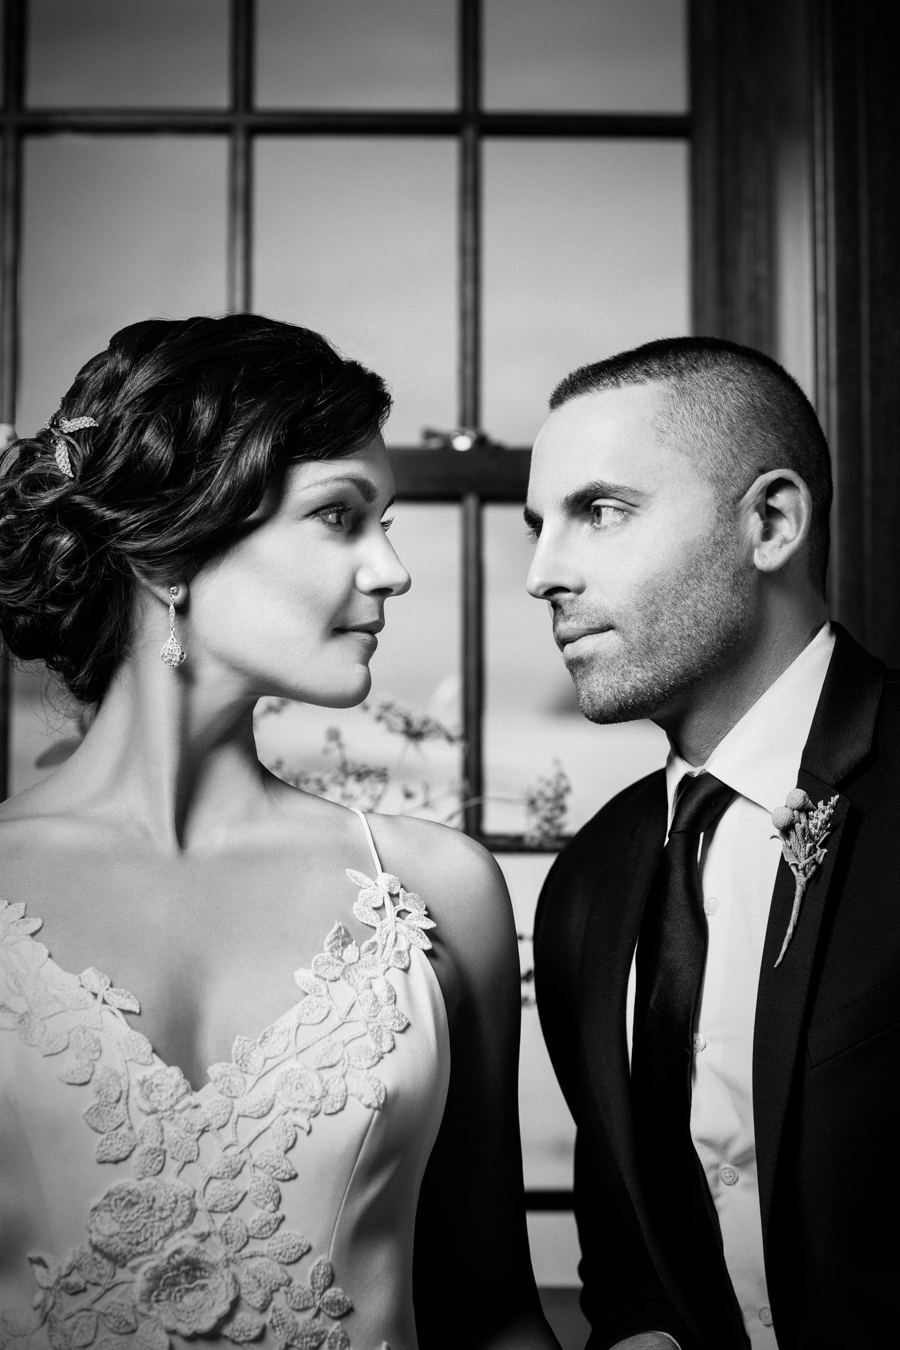 Shades-of-grey-inspired-Connecticut-wedding-fashion-style-black-tie-photographer-BSC-Amy-Champagne-Events-Portraits_0003.jpg